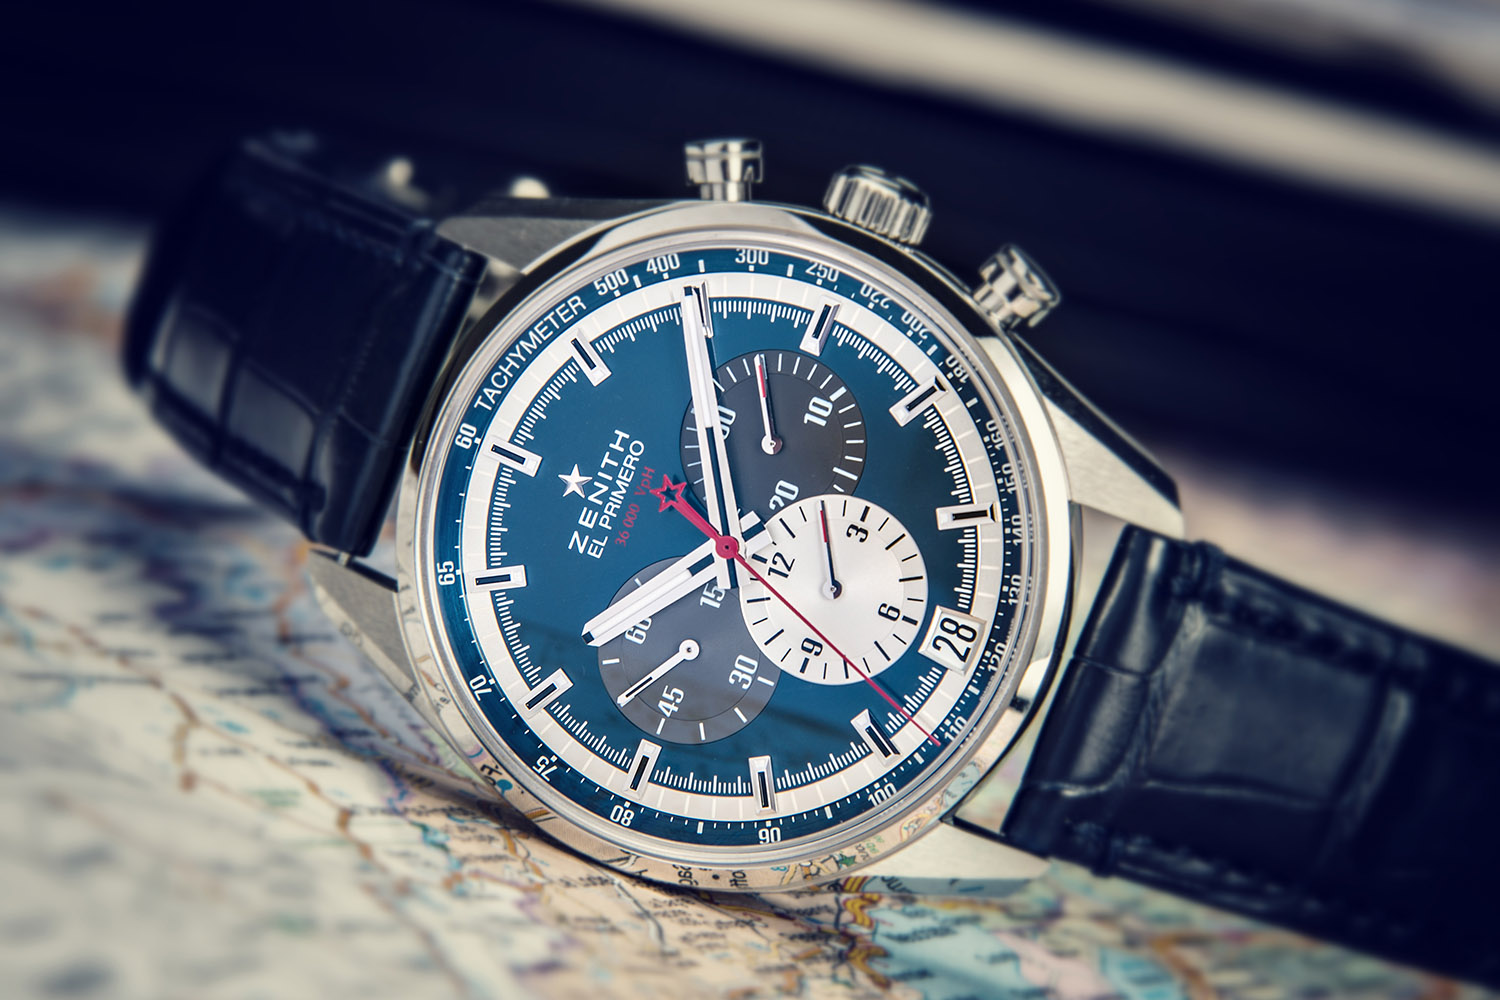 Second Hand Watches >> Blue is the New Black at Zenith - 5 Iconic Pieces now Dressed in Blue - Monochrome Watches